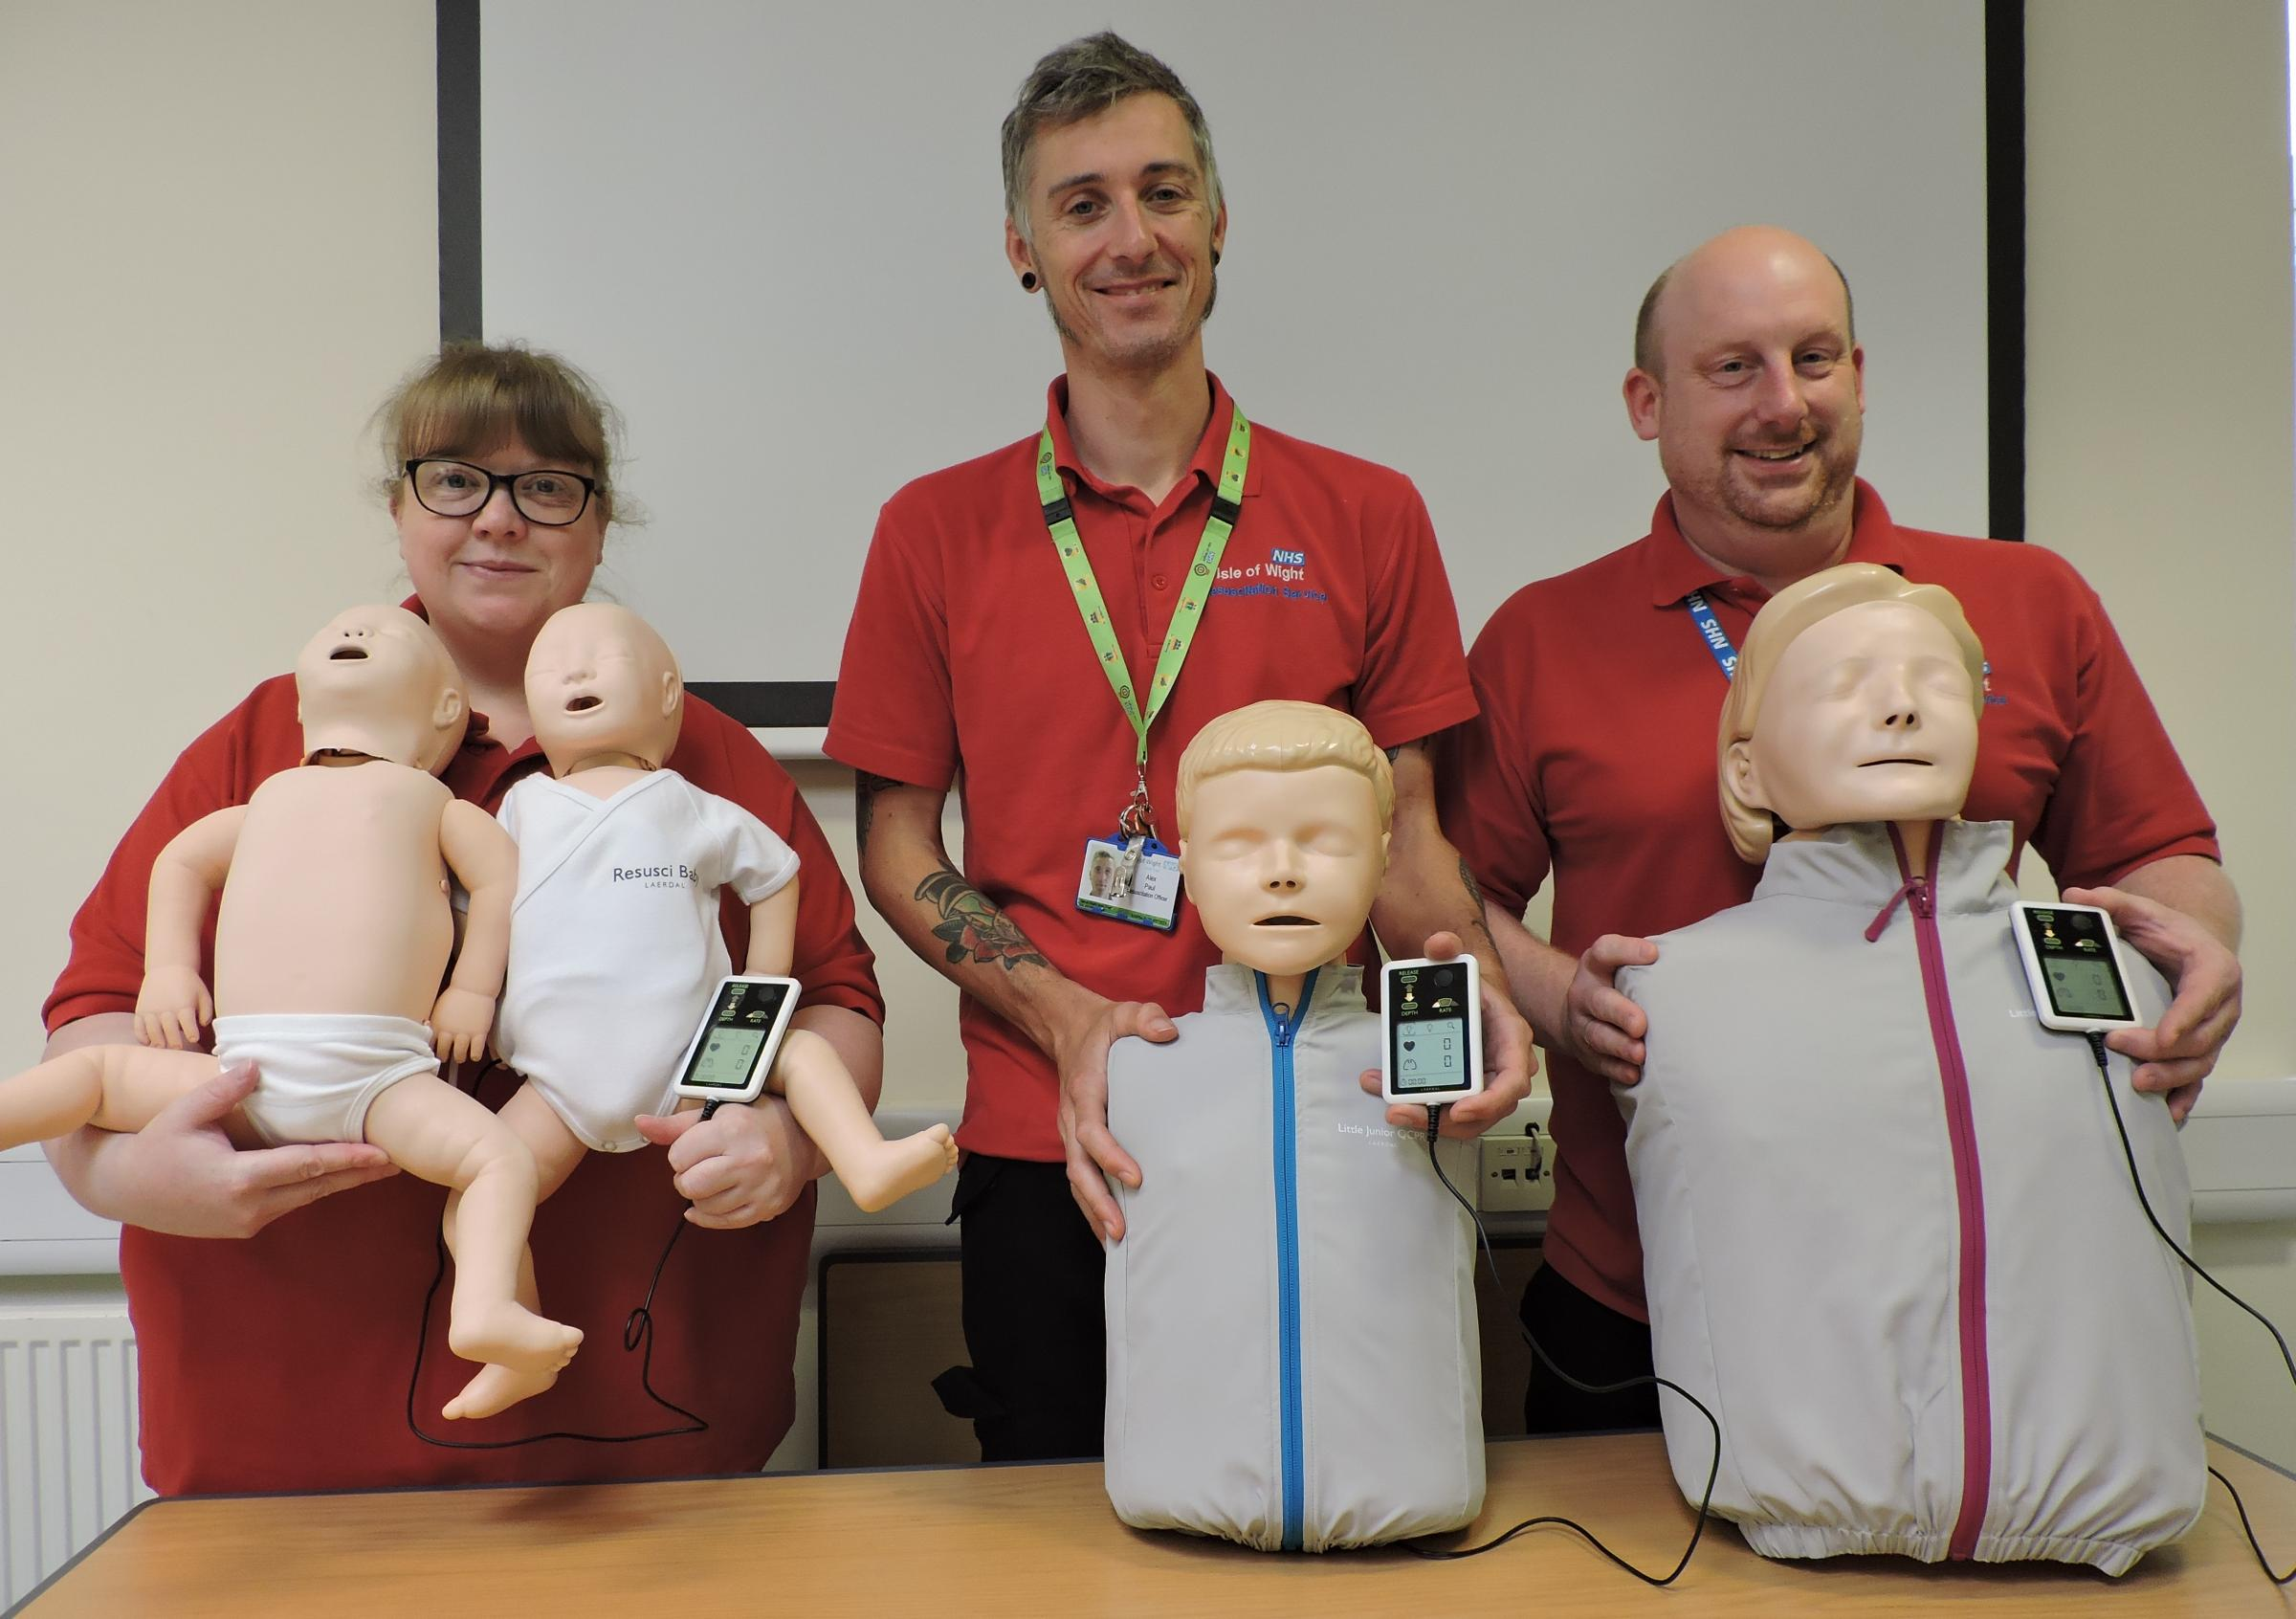 New life-like resuscitation manikins for Isle of Wight NHS staff — improving CPR and saving lives